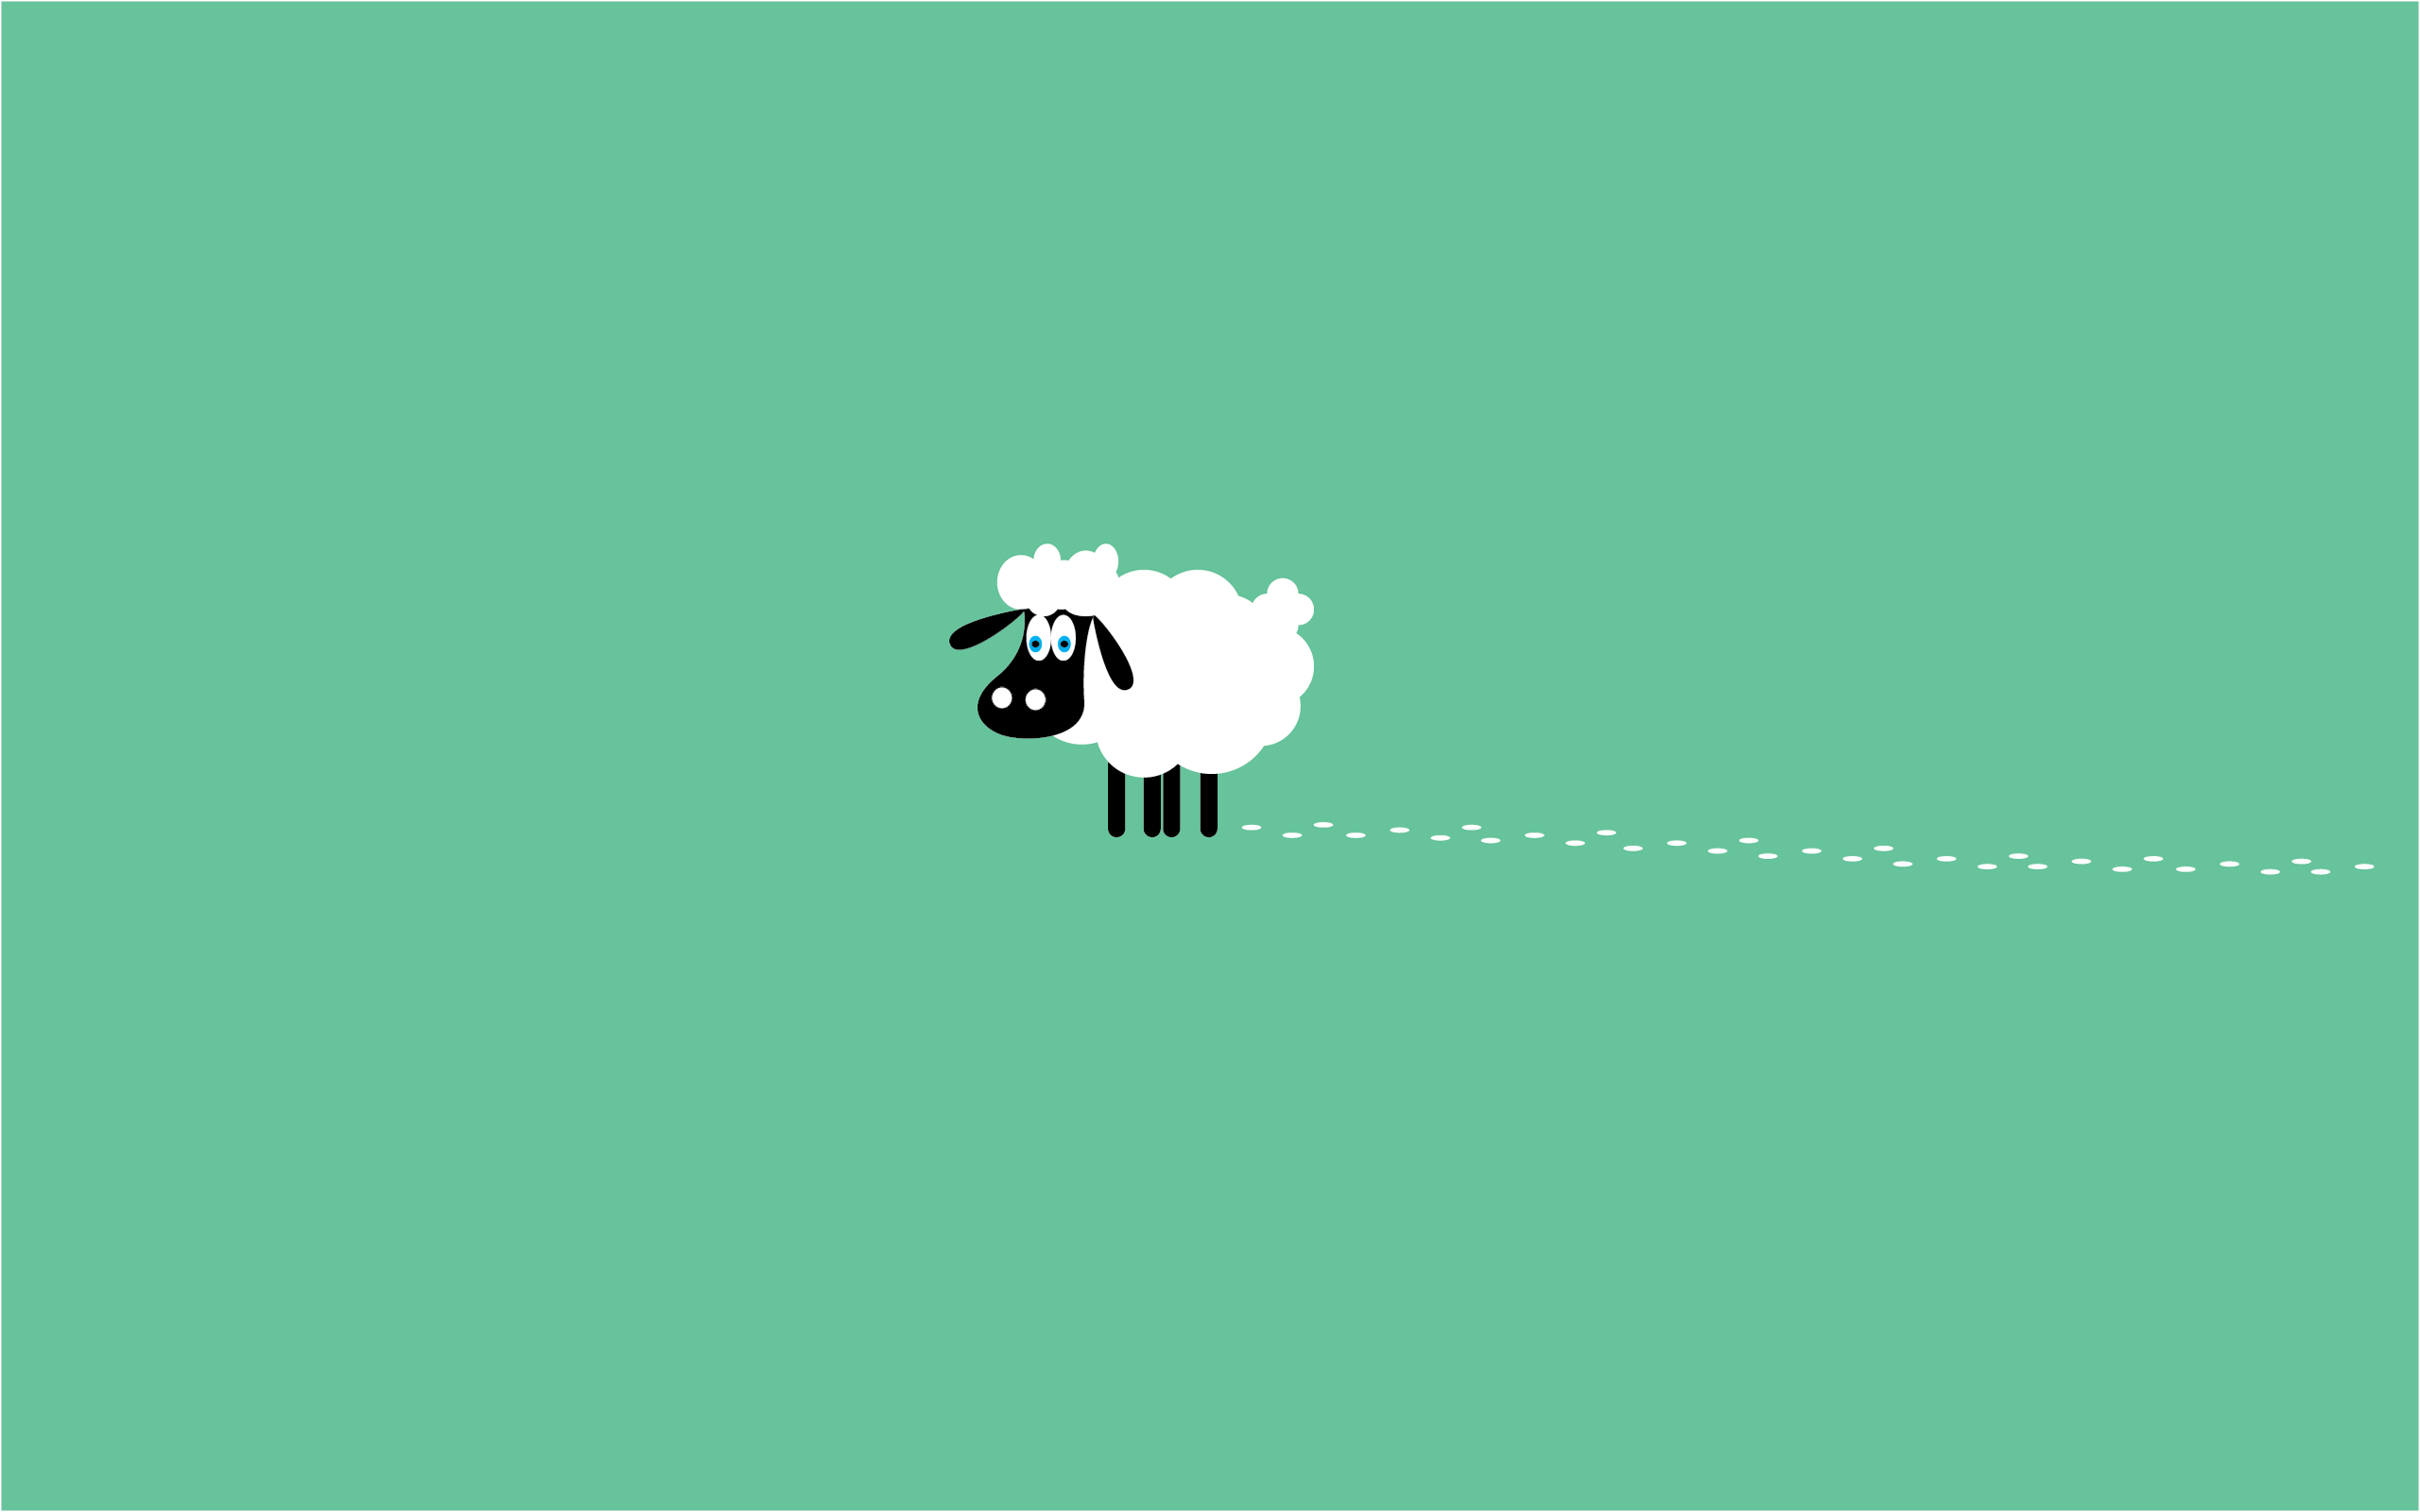 (2560x1600 px) - Sheep Wallpapers, Tammy Hodel